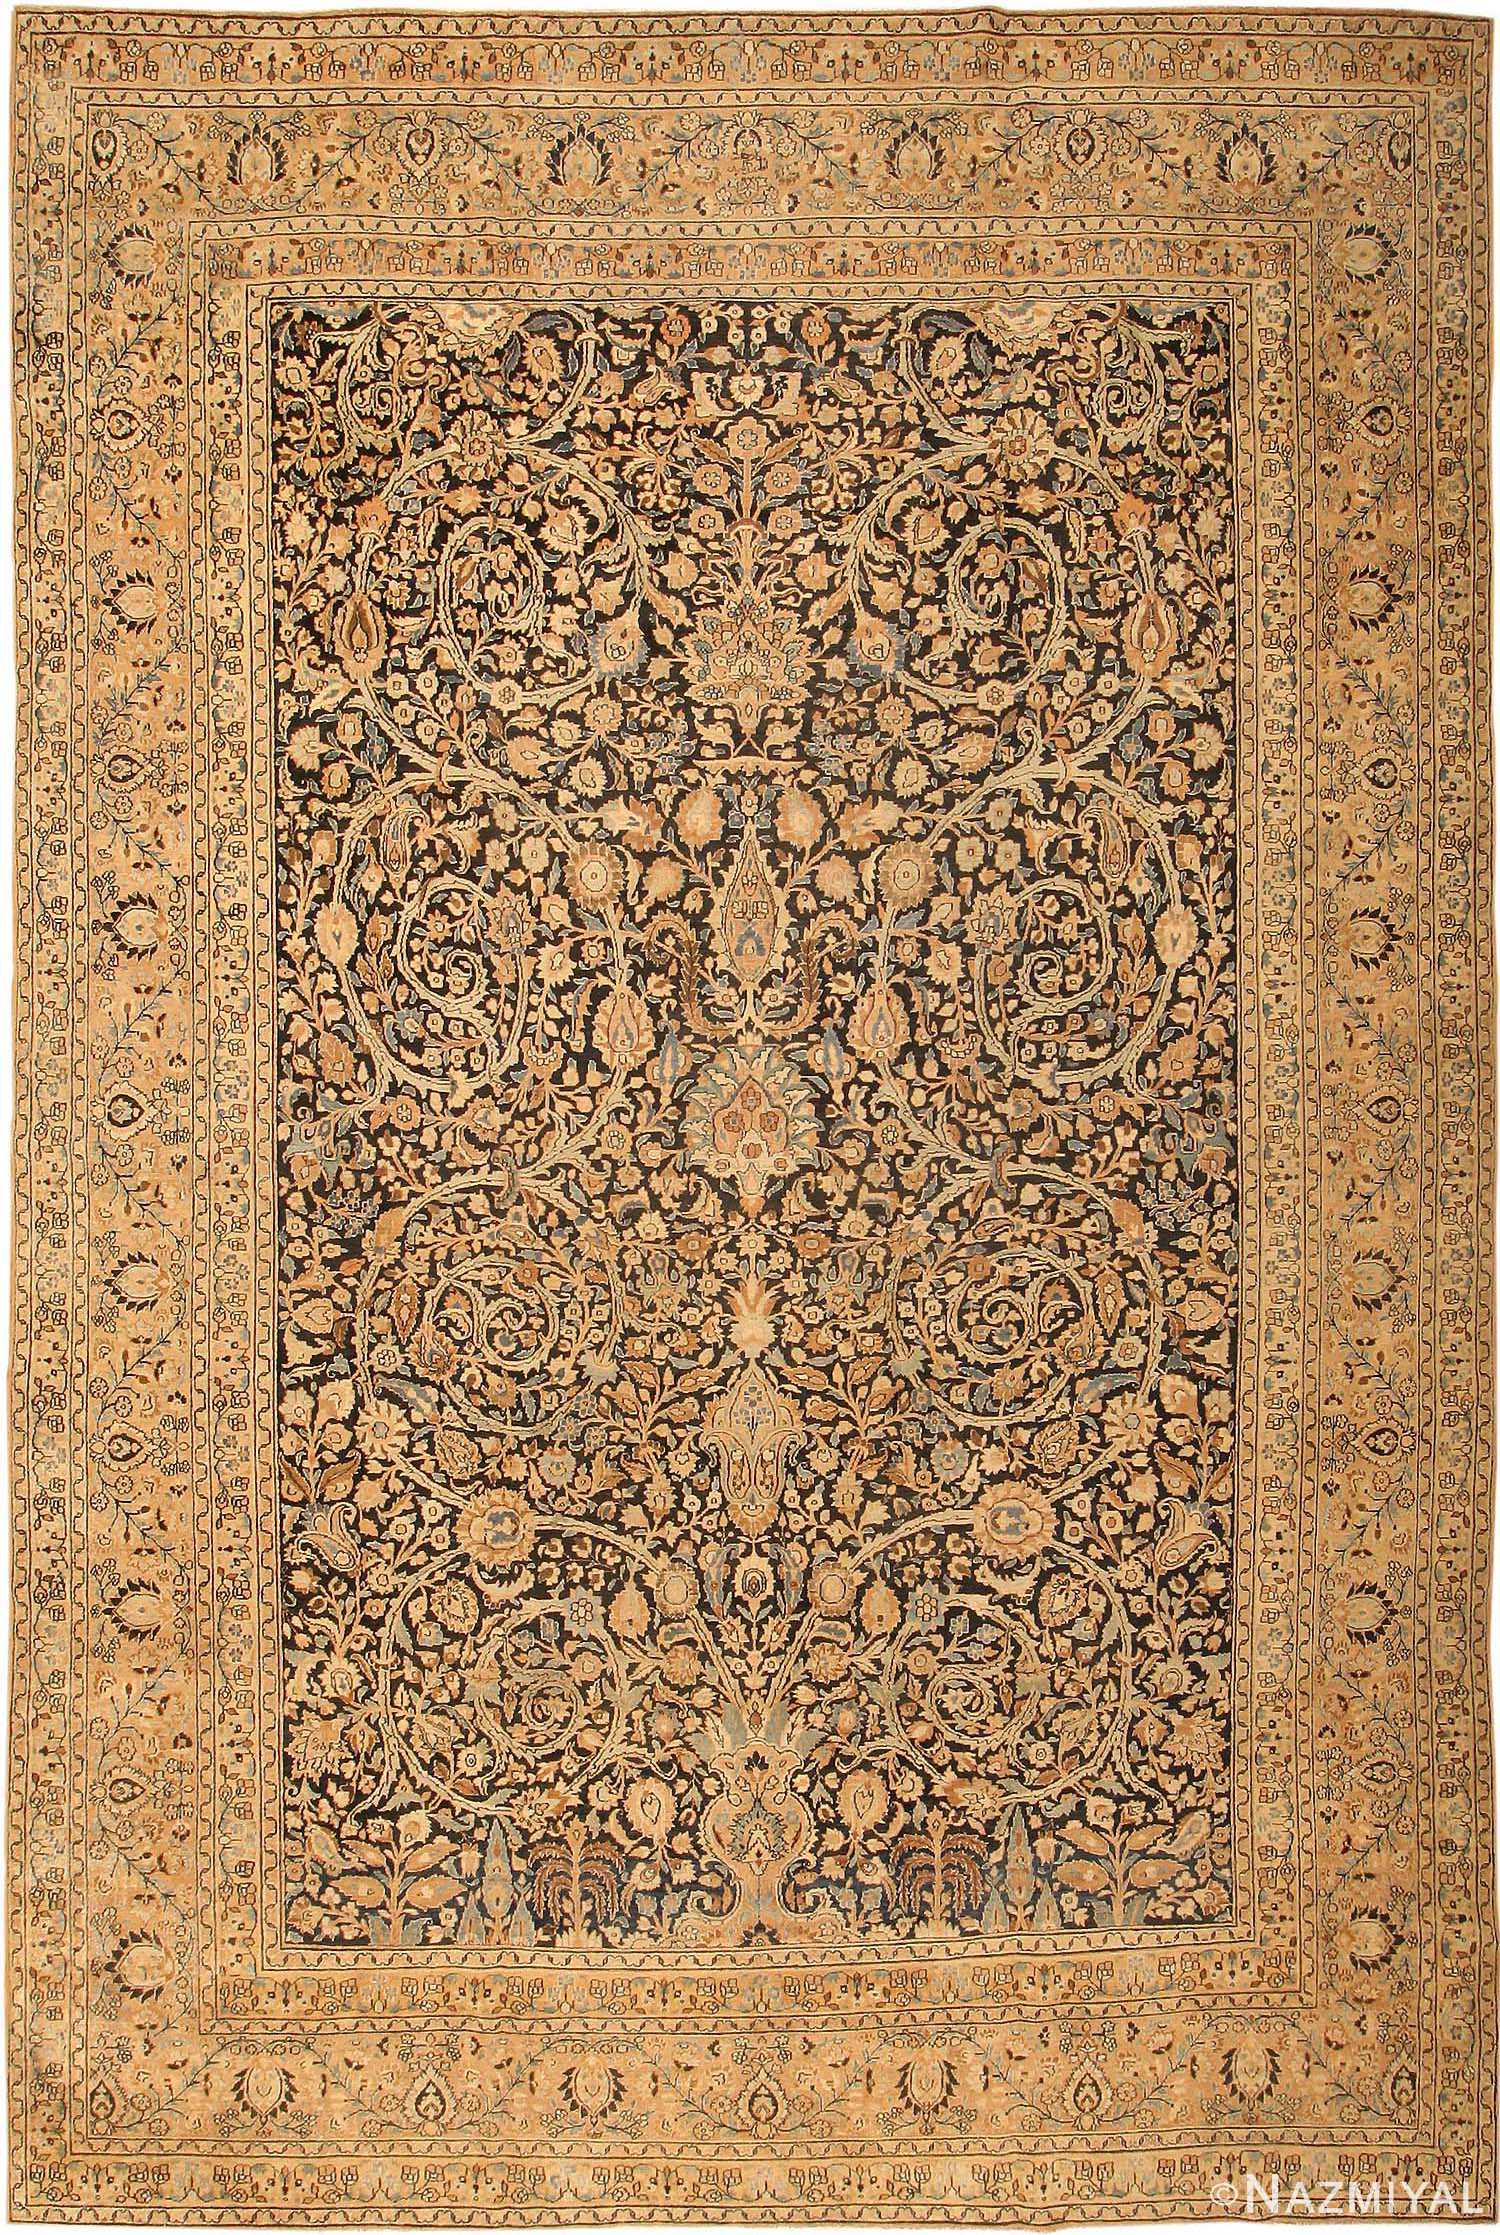 Decorative Large Antique Khorassan Persian Carpet 41814